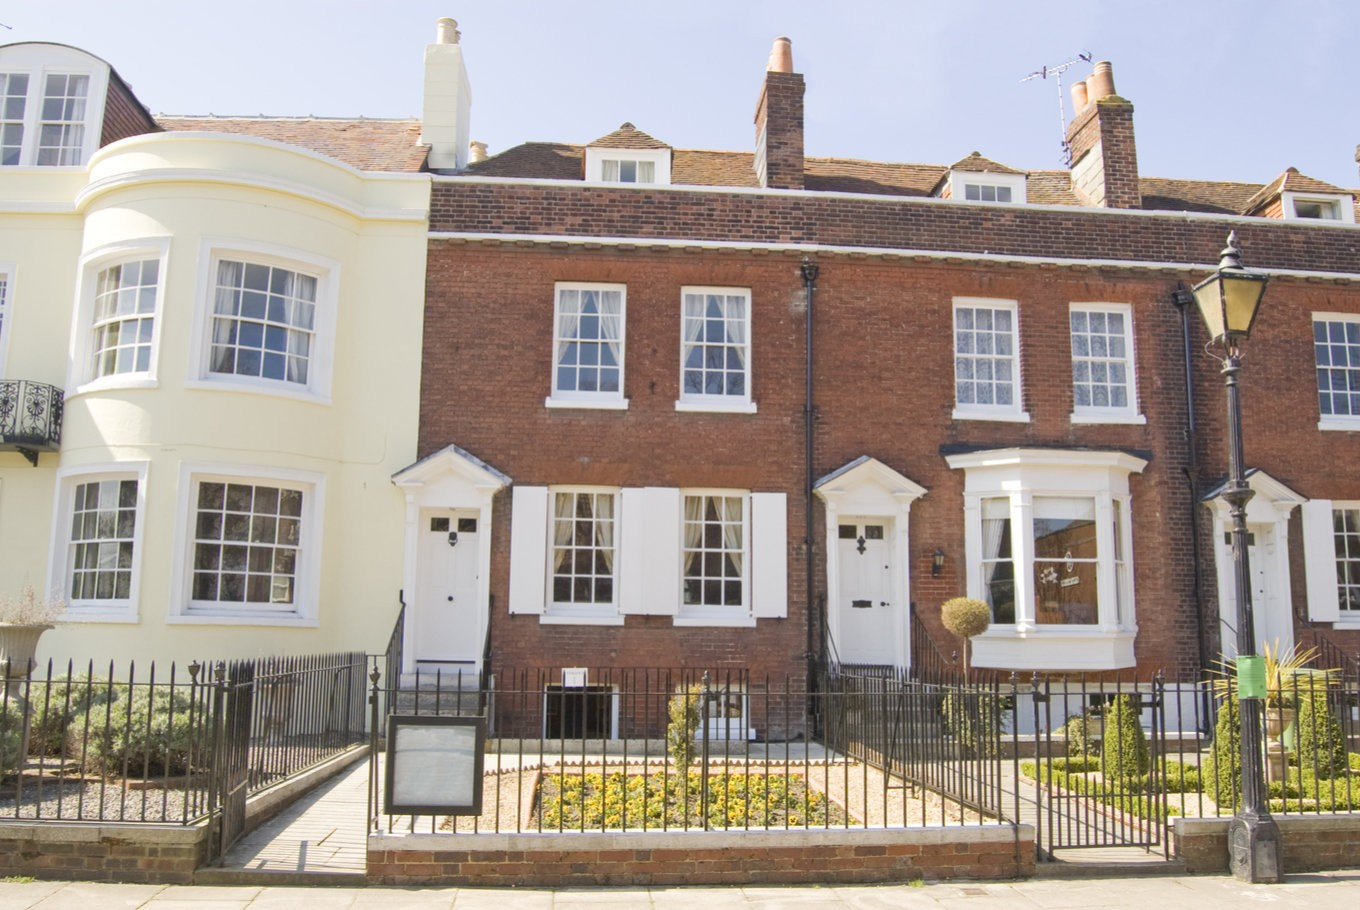 Charles Dickens Birthplace Museum offers glimpse into his life and times